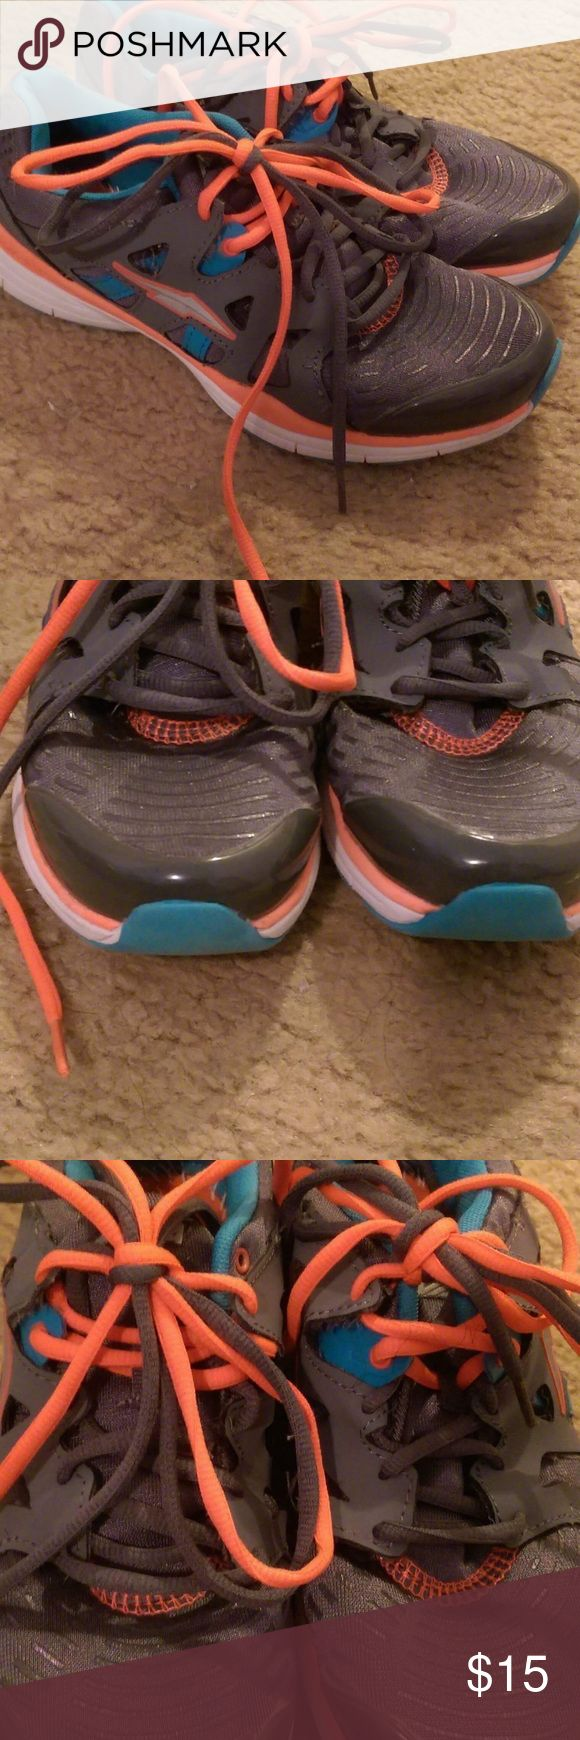 Size 8 Running Shoes Avia brand running shoes. Gray, Teal and bright orange. Double laces. Pre loved but in good condition. Has a few minor Mesh snags and the logo is rubbed off on the insoles. Size 8 Avia Shoes Athletic Shoes